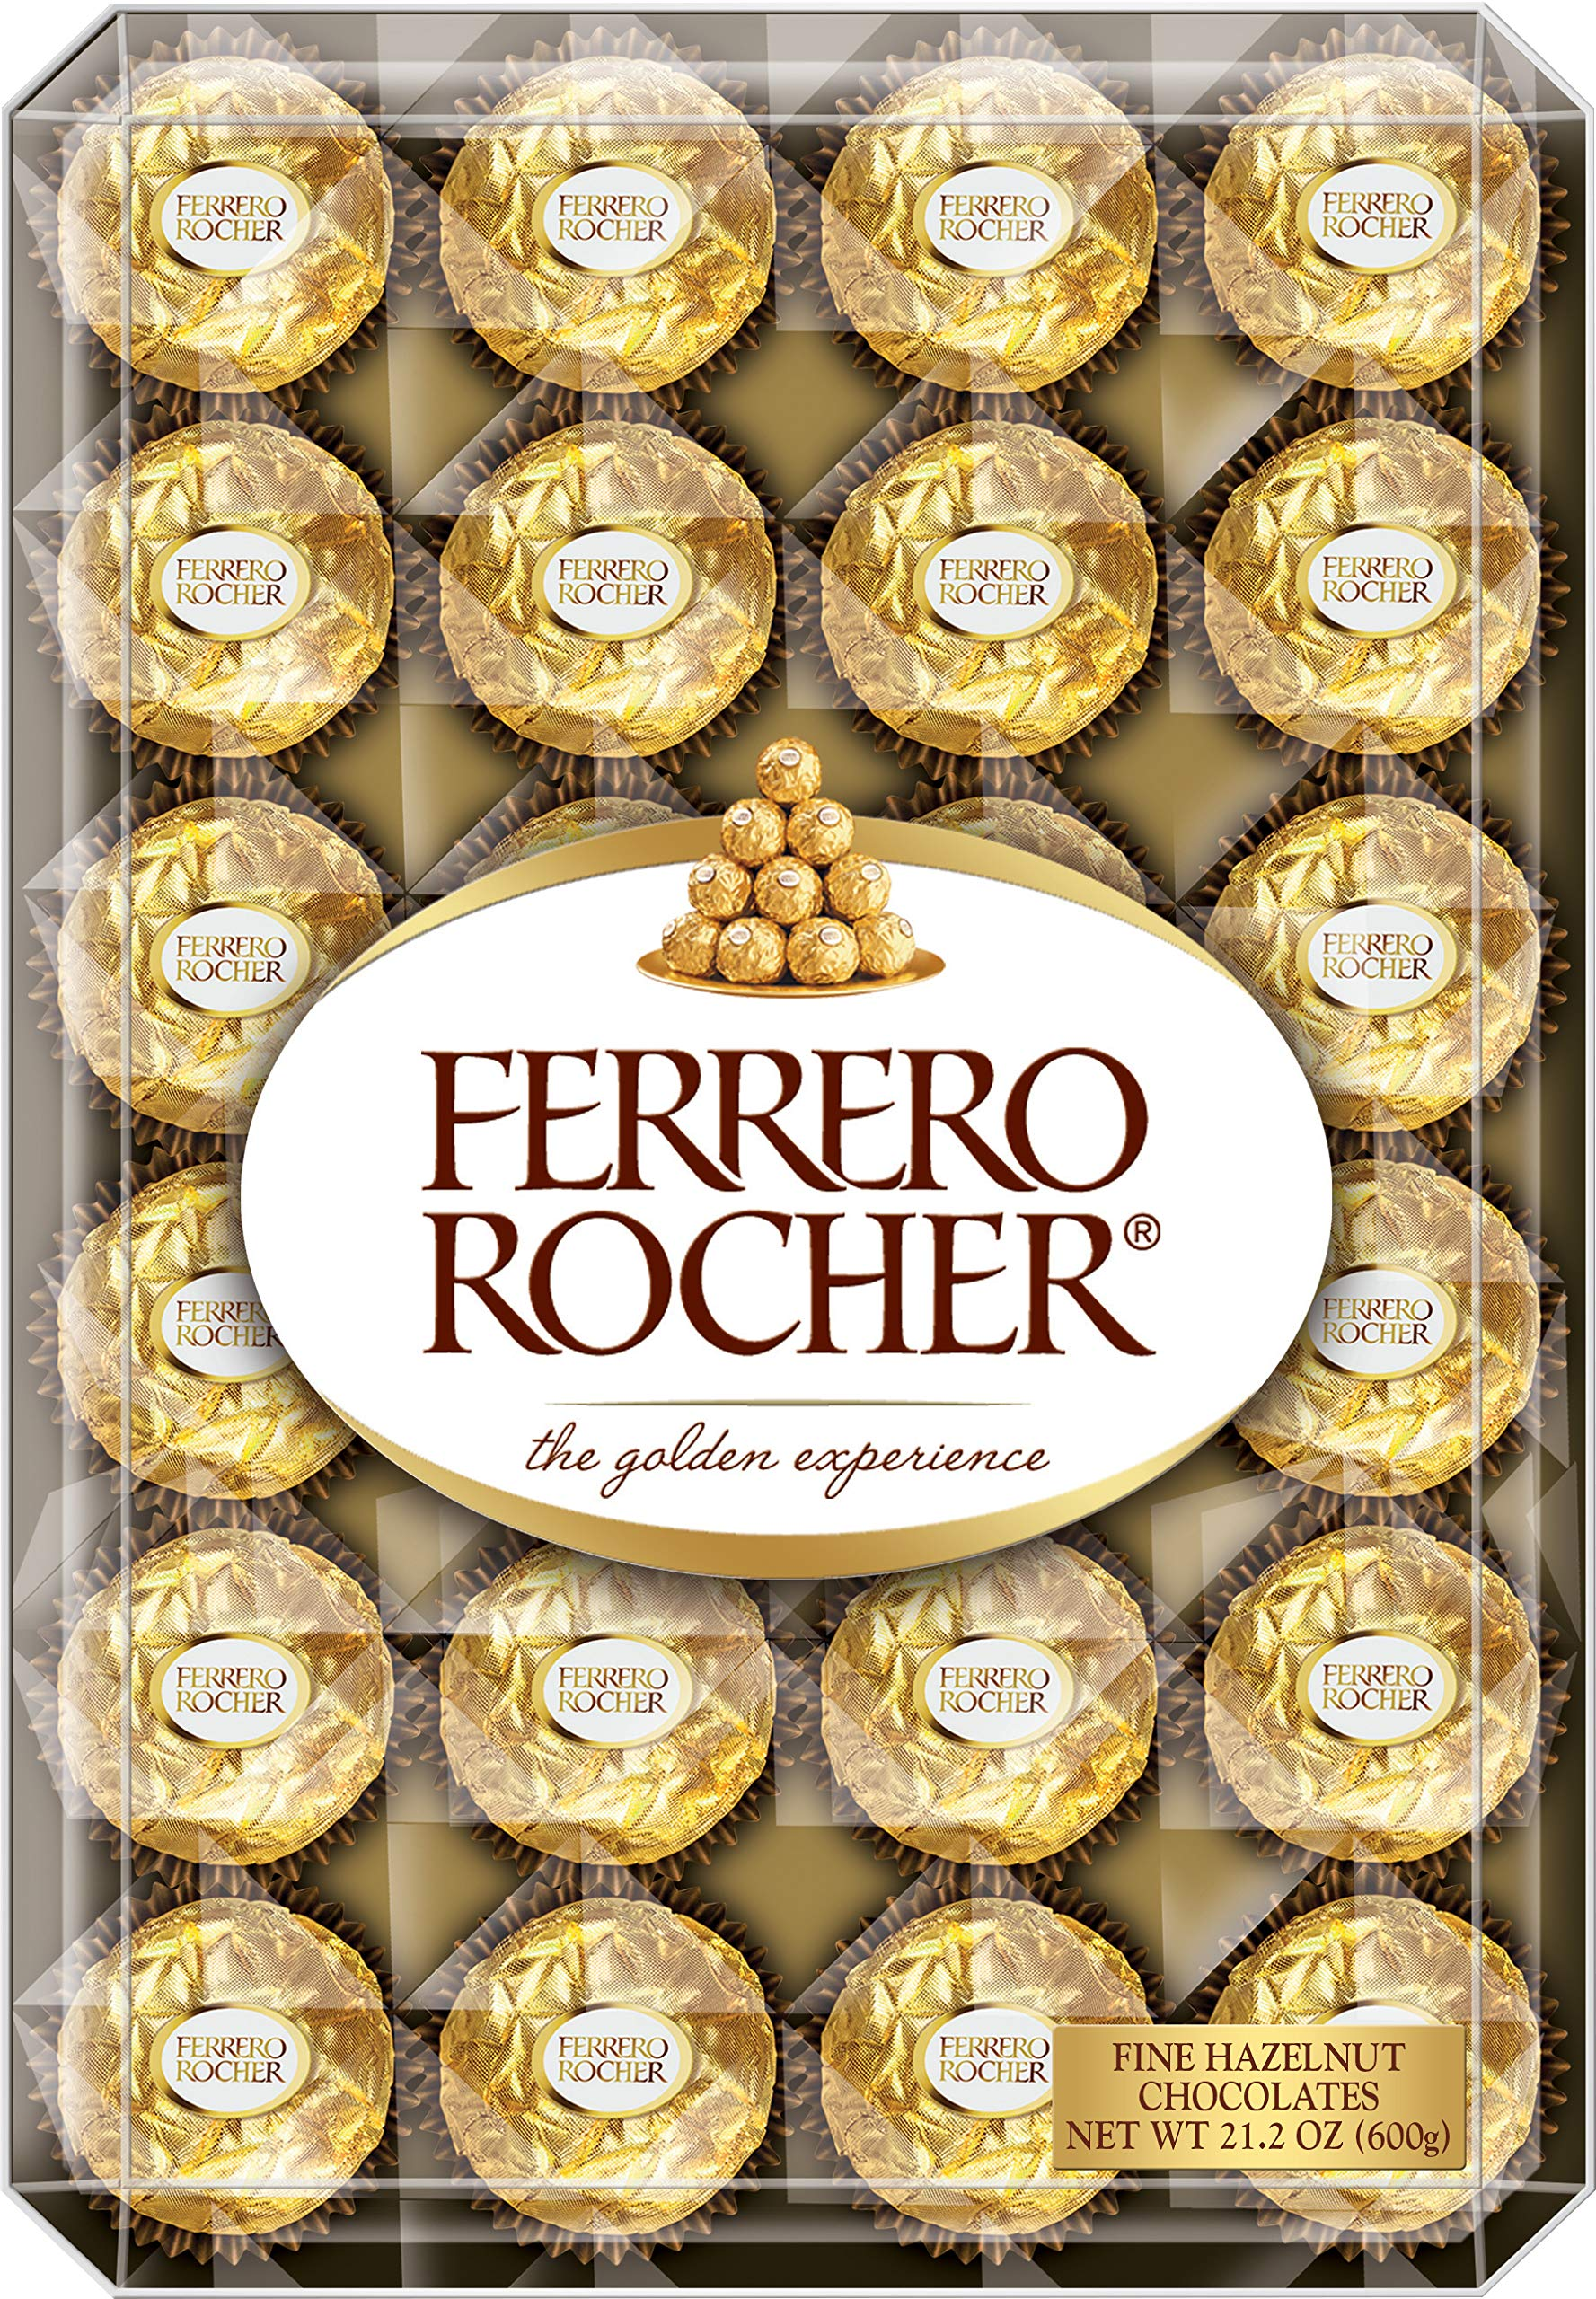 Amazon.com : Ferrero Rocher, 12 Count (Pack of 6 ...